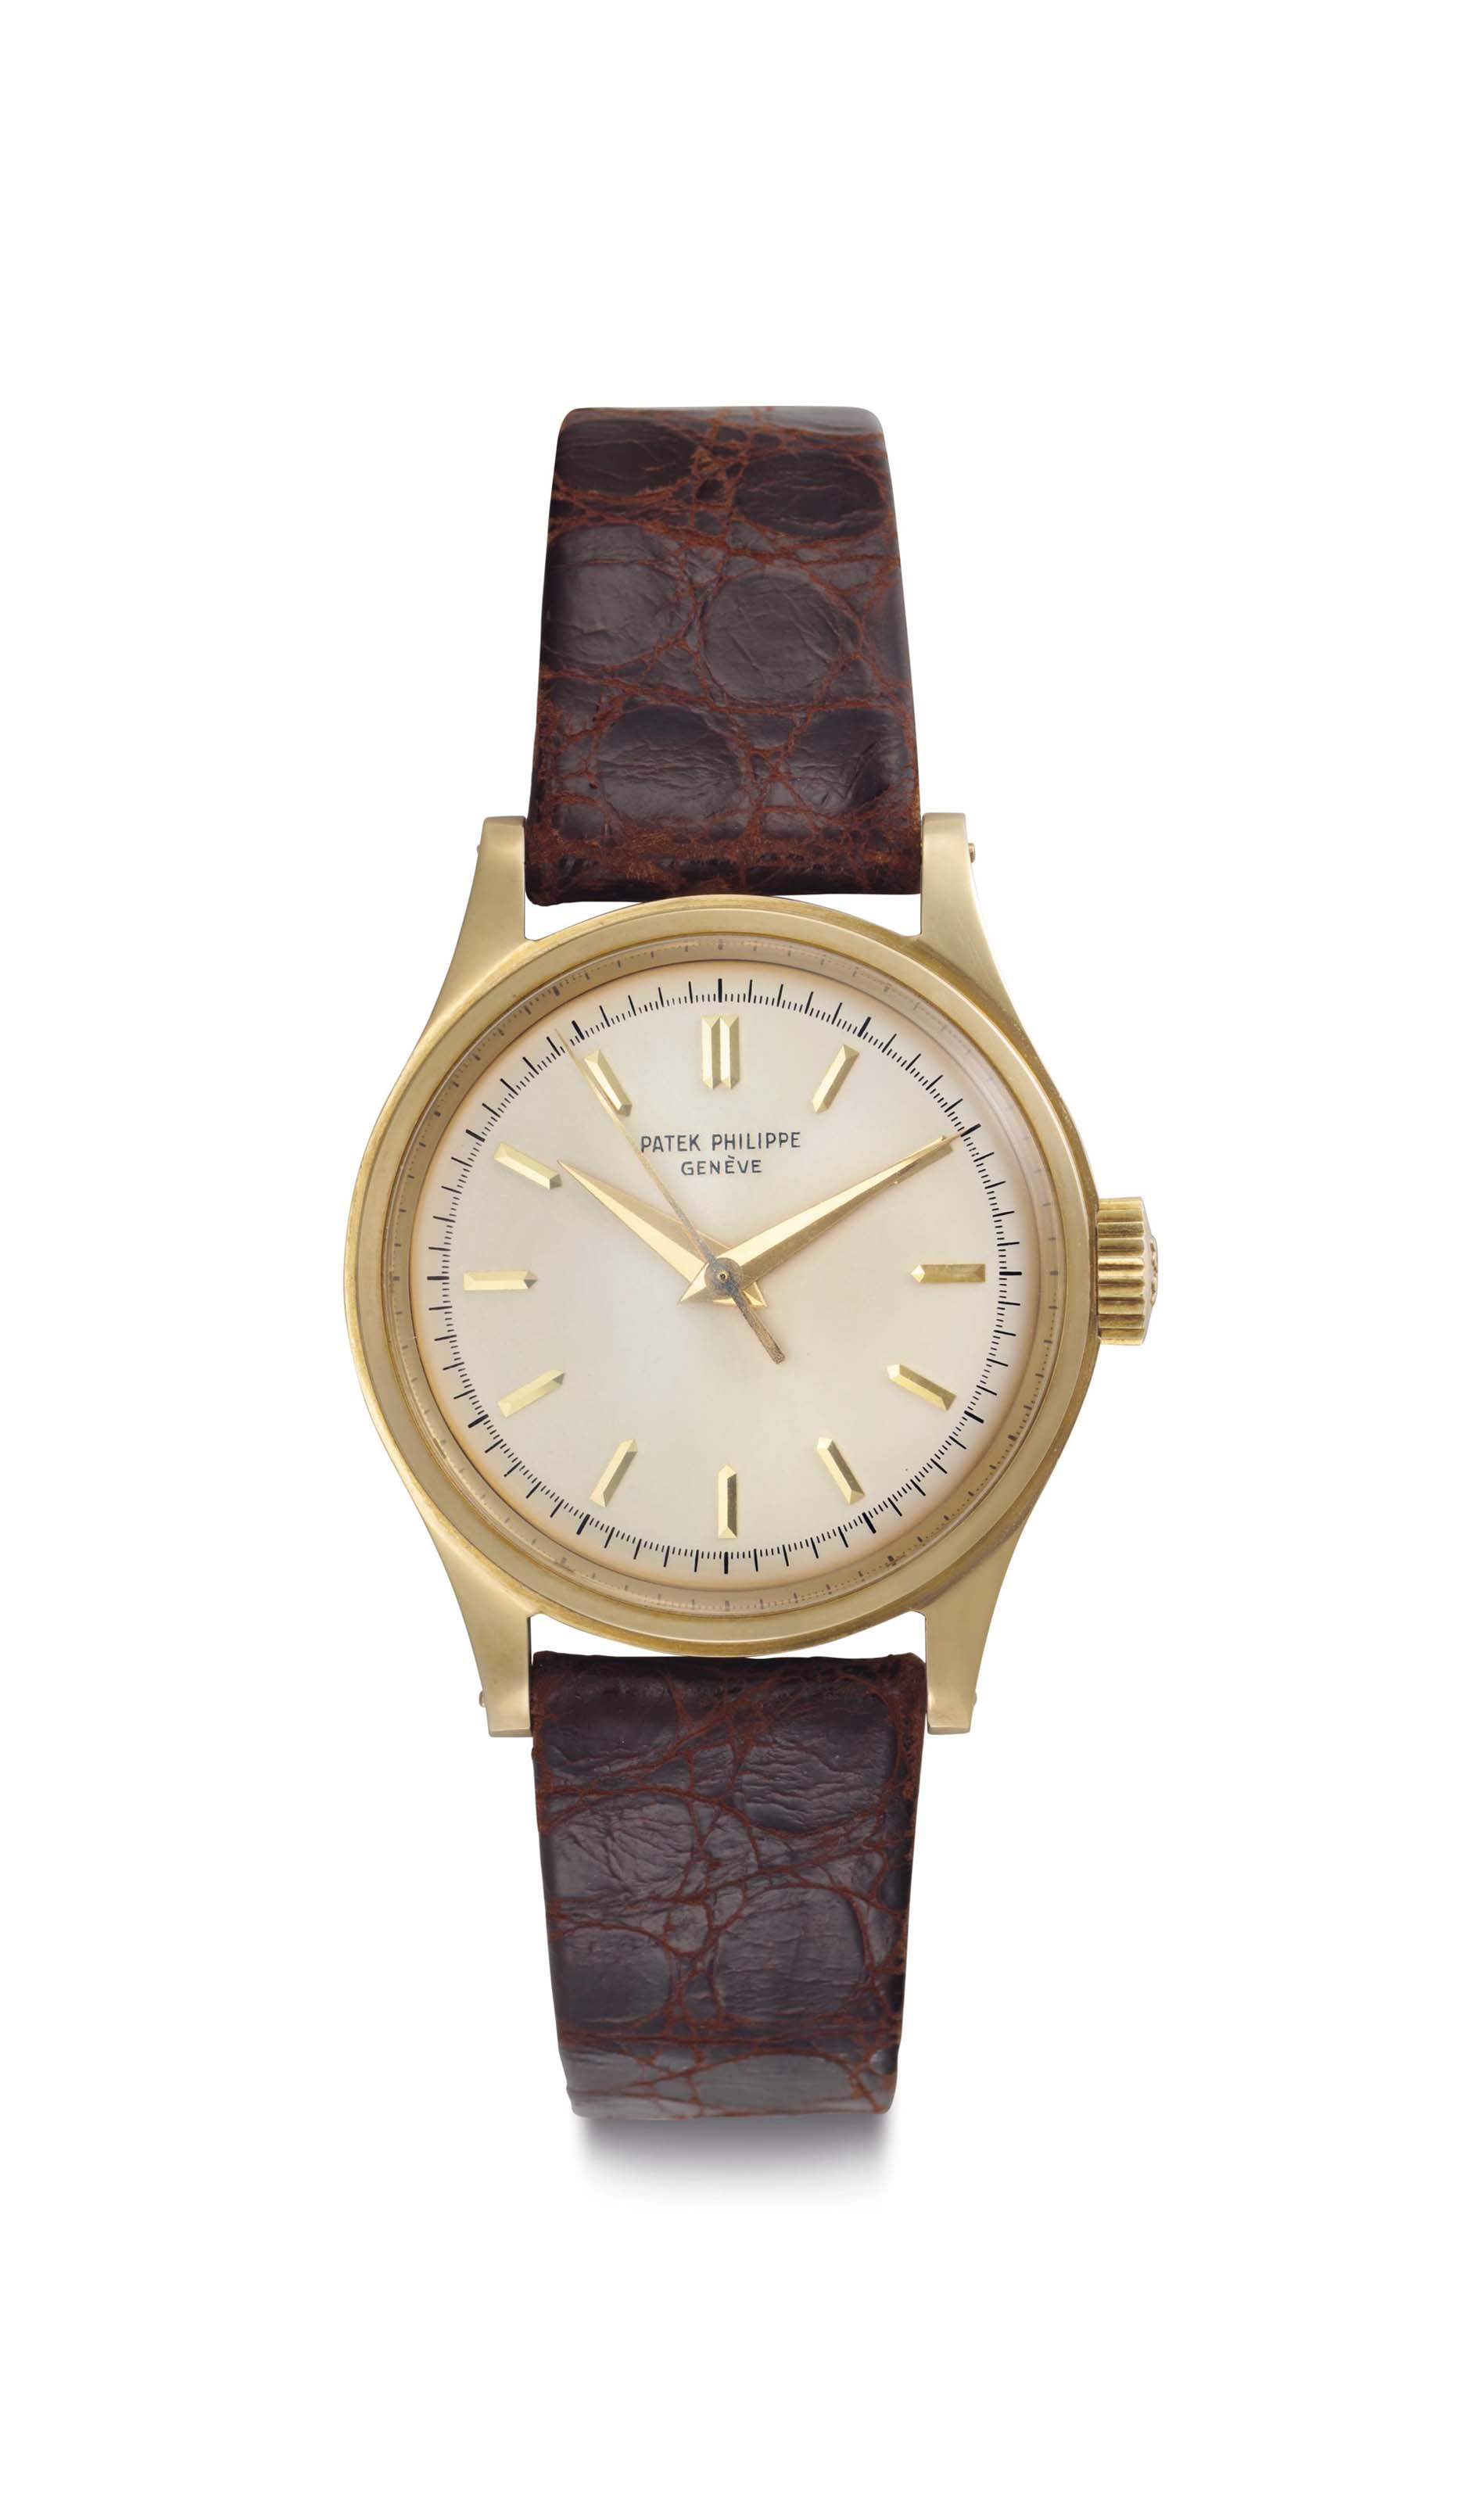 P Philippe Watch Patek Philippe A Fine 18k Gold Wristwatch With Center Seconds